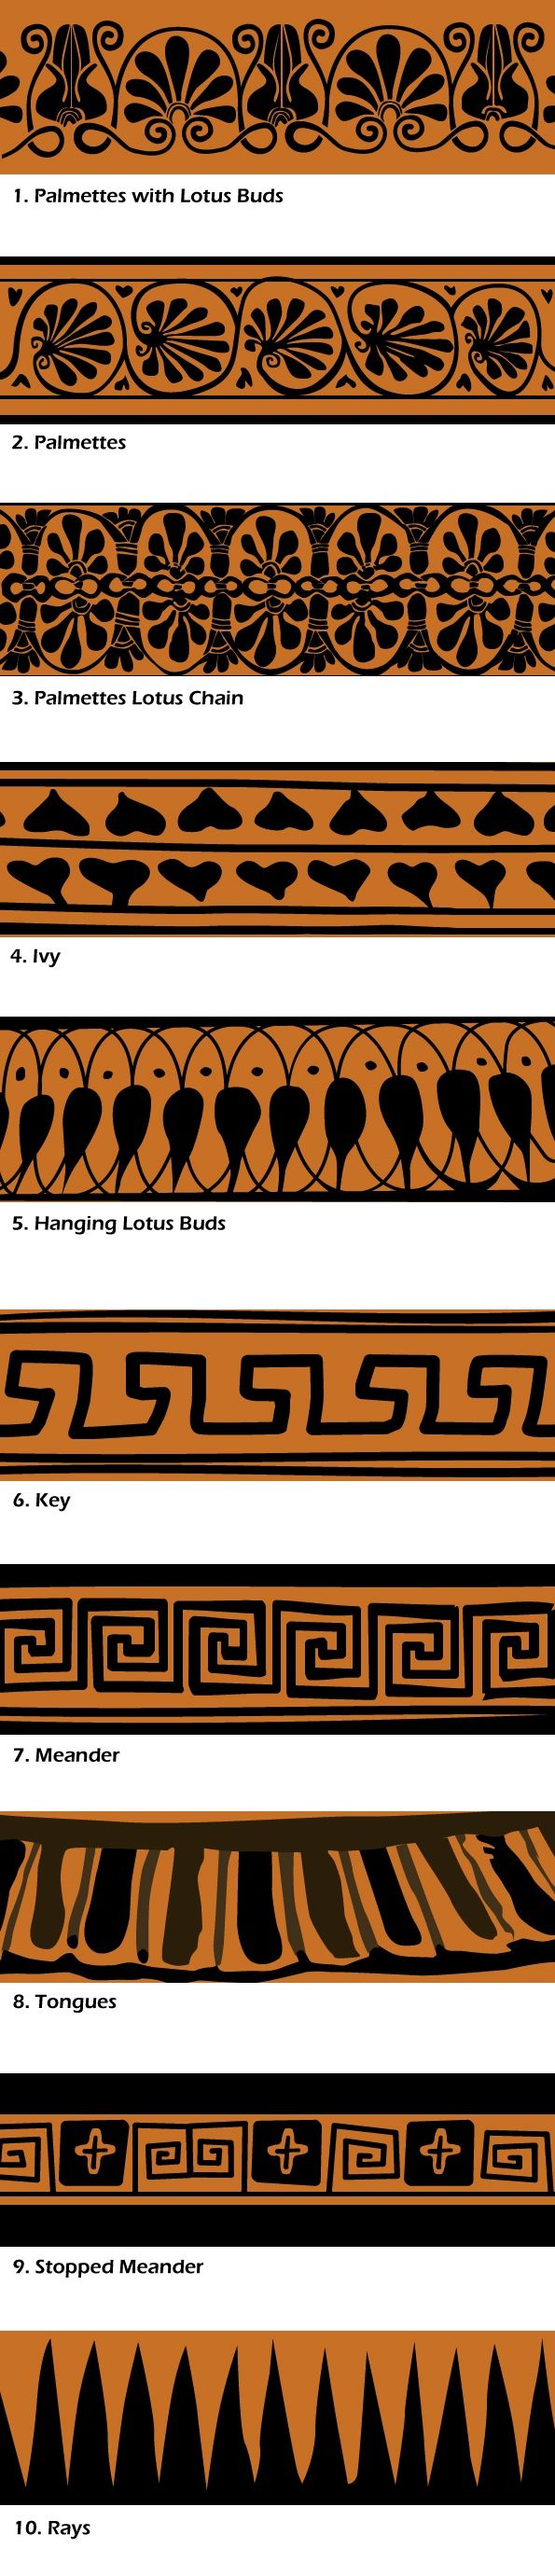 Ten of the most common decorative ornaments used in ancient Greek pottery. These were used principally on the outer edges of the pottery wares and also on the neck, foot and around handles.